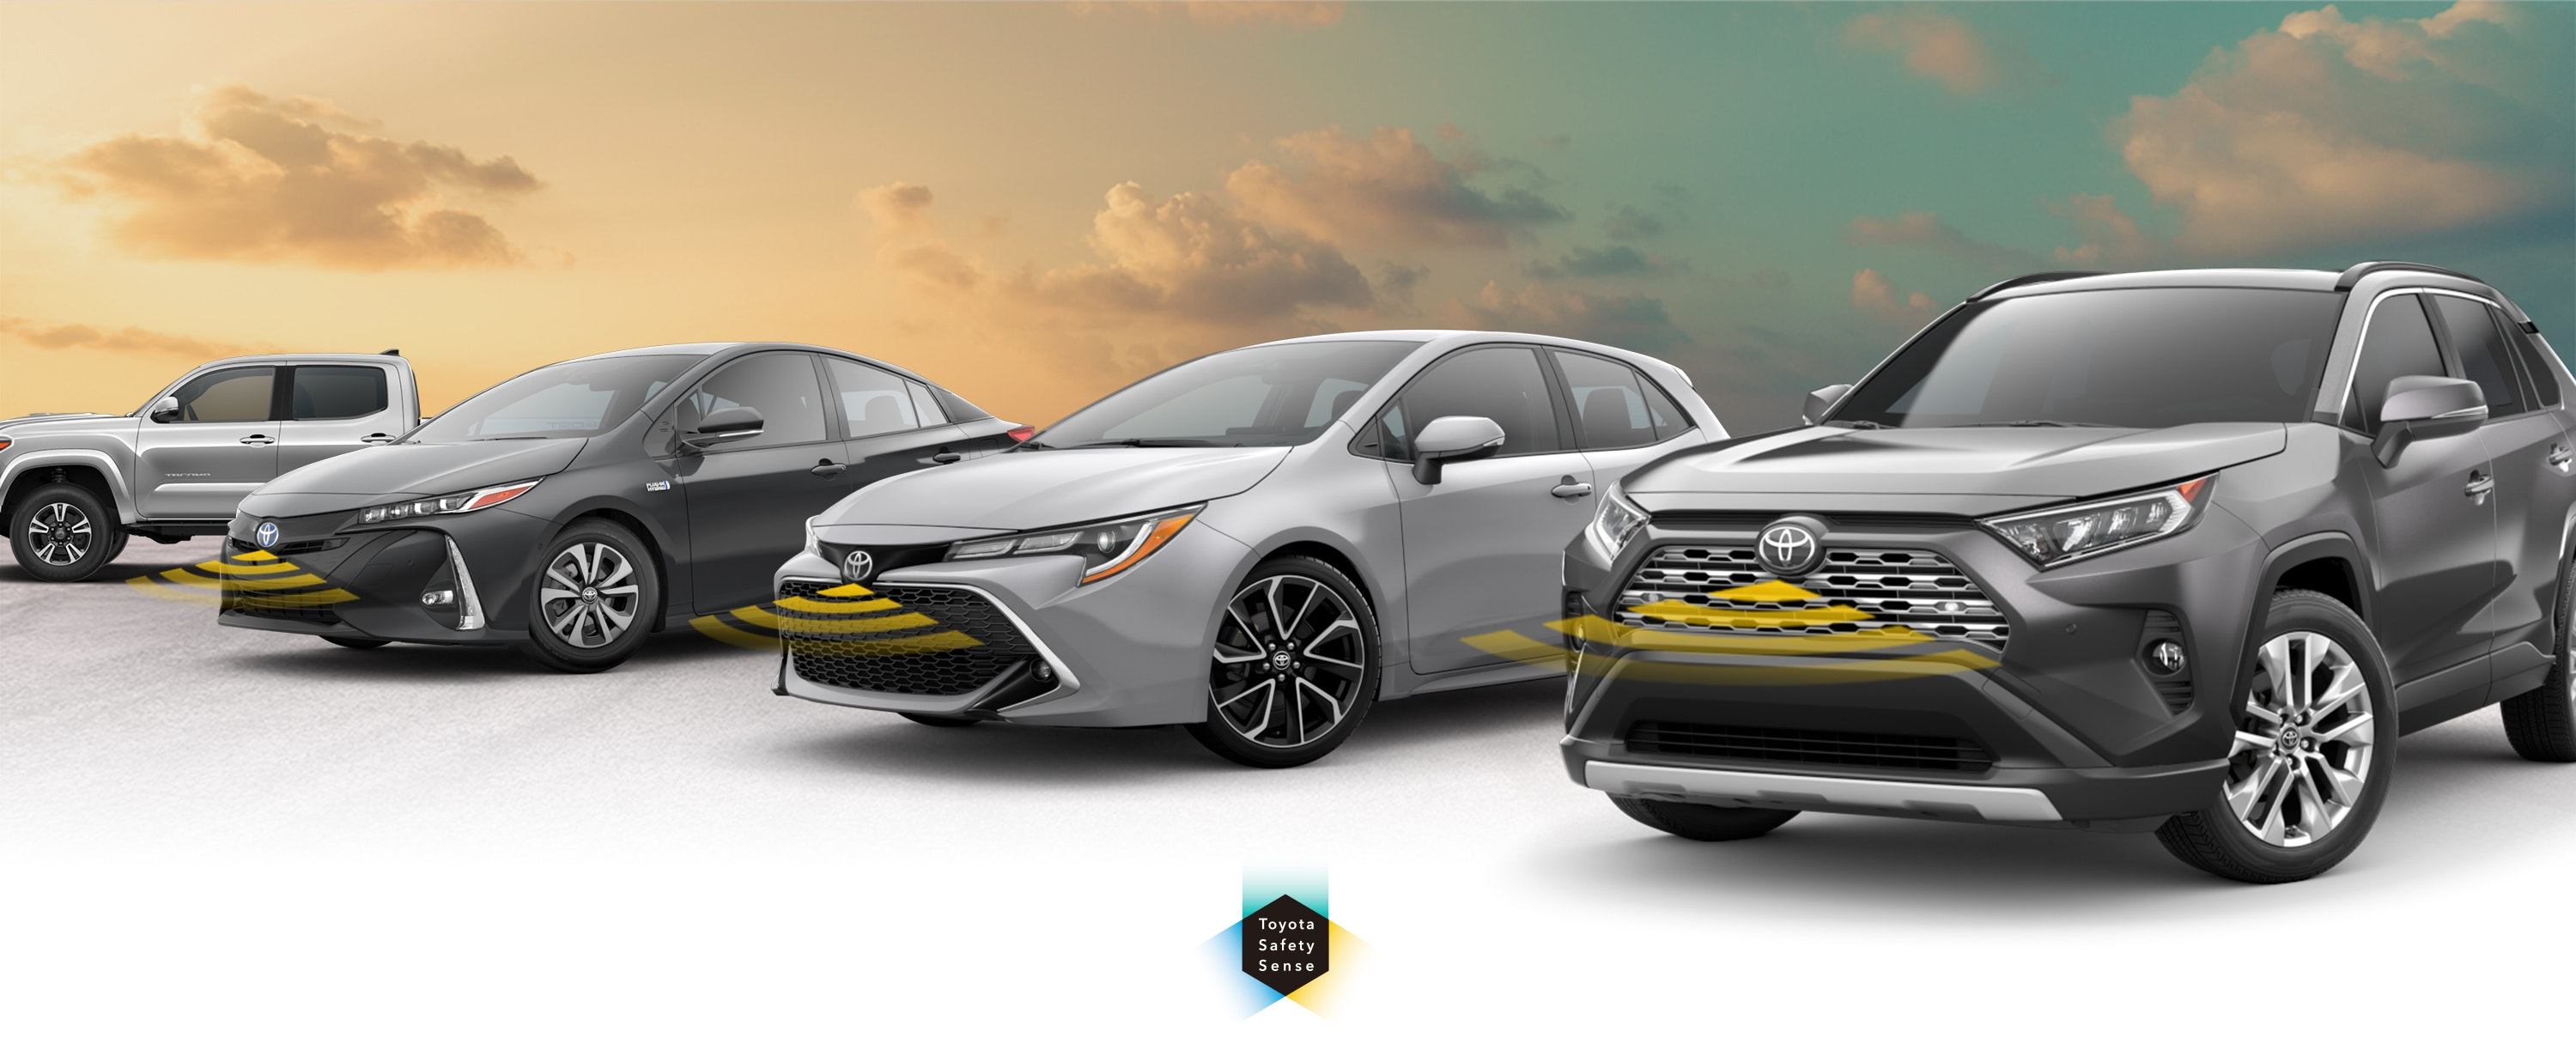 Toyota Safety Sense, designing cars for safety